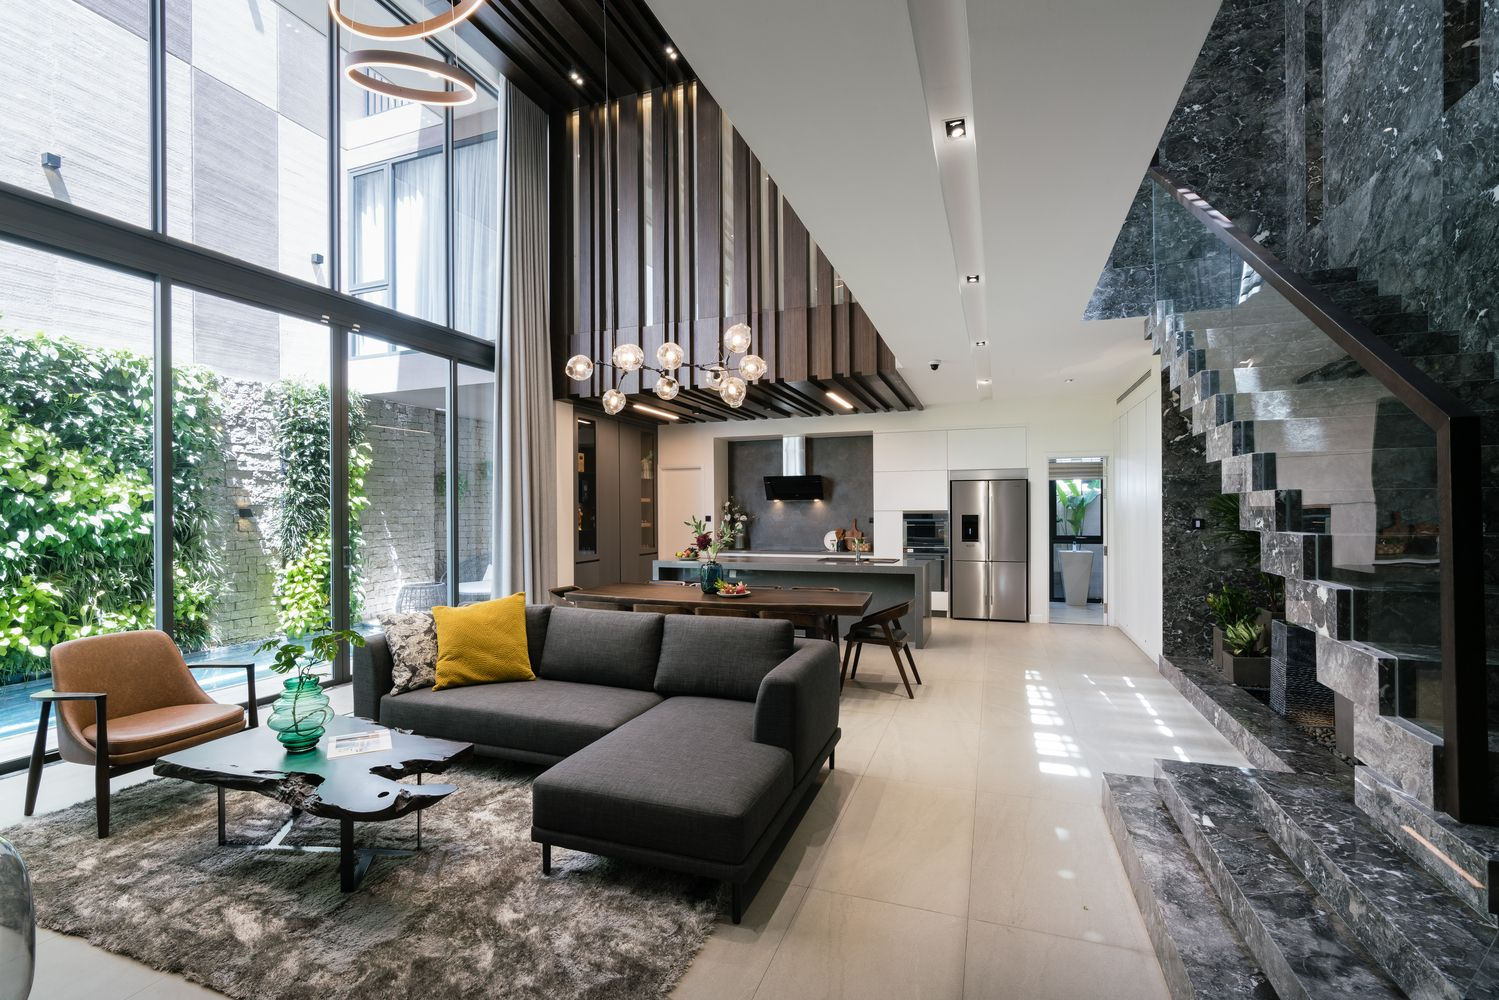 Gallery Of The Rough House Nelo Decor 52 In 2020 Modern House Exterior House Design House Interior Decor